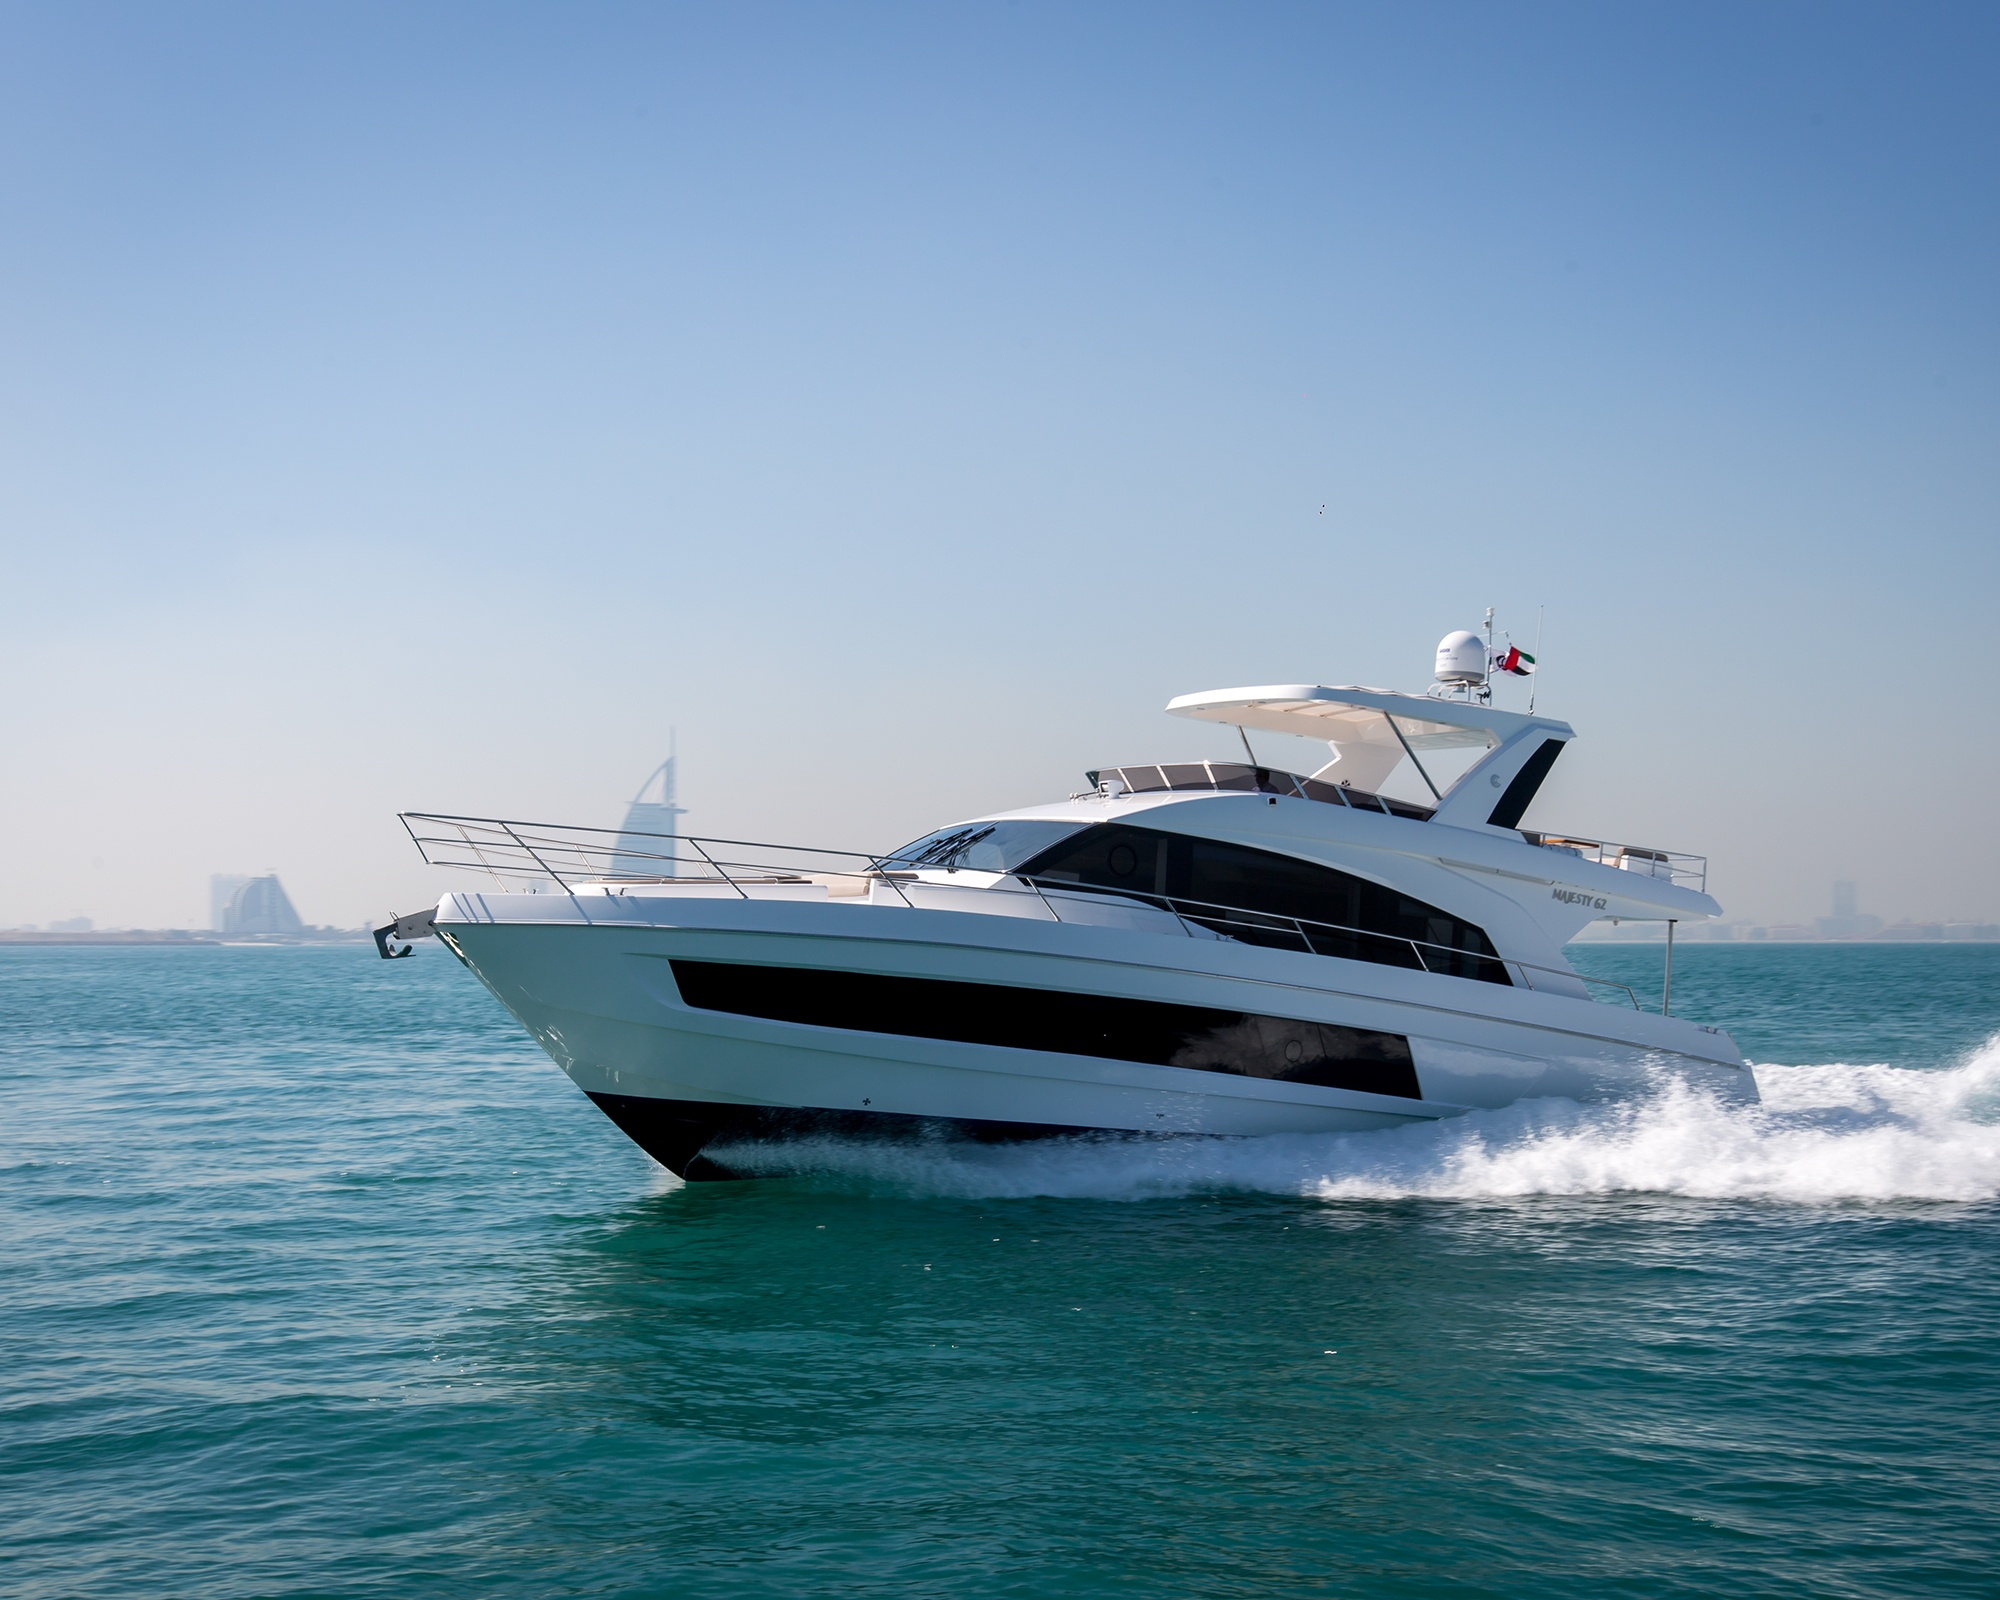 The All-new Majesty 62